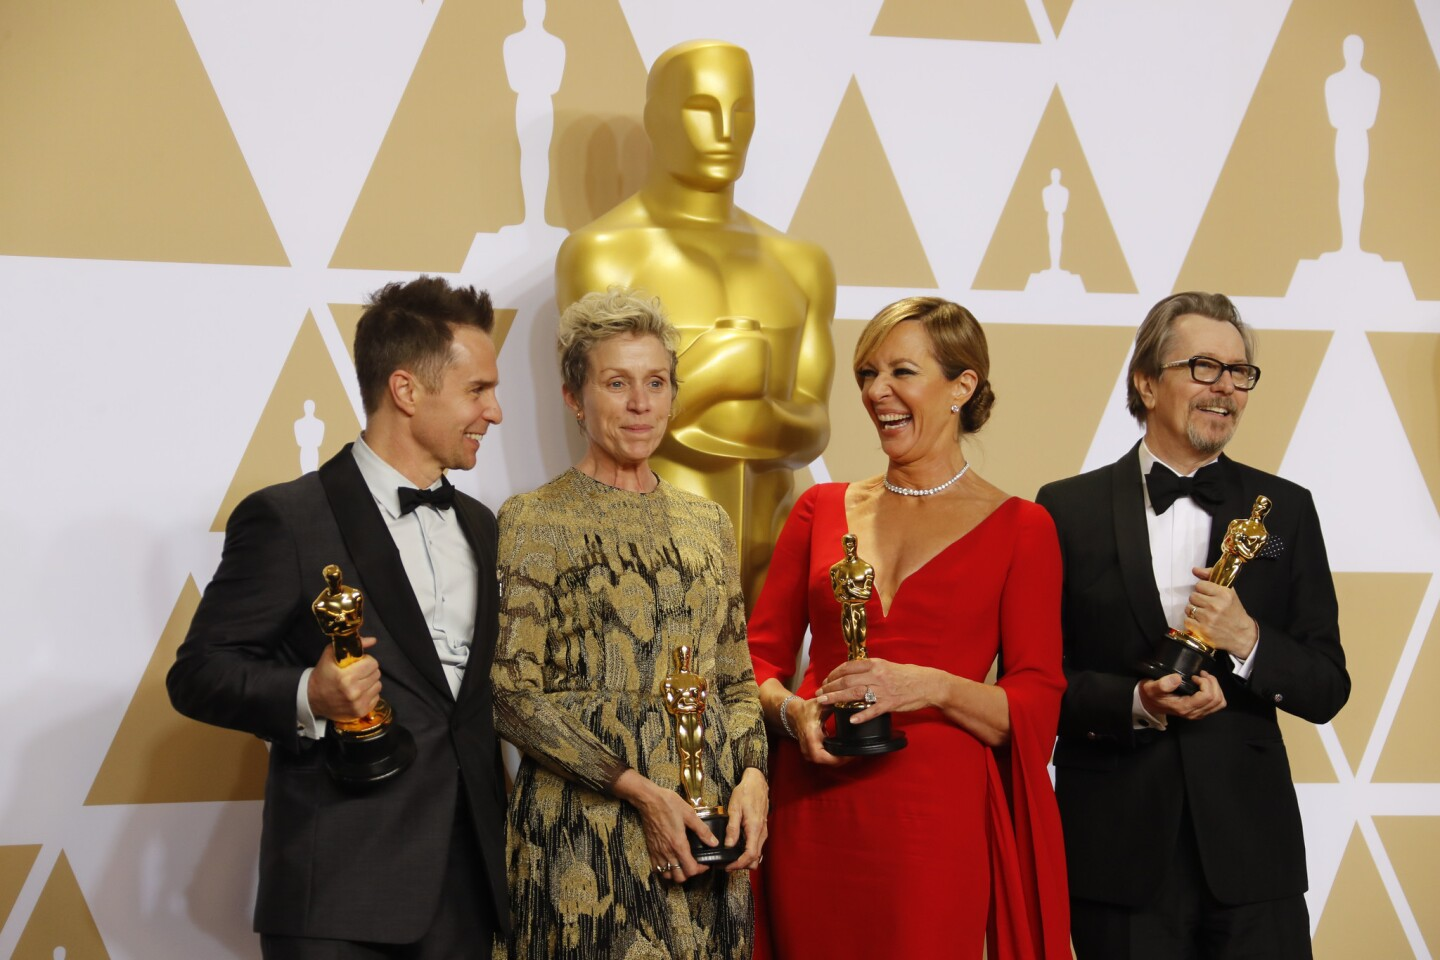 """The four acting winners, from left, Sam Rockwell, supporting actor for """"Three Billboards Outside Ebbing, Missouri,"""" Frances McDormand, lead actress for """"Three Billboards,"""" Allison Janney, supporting actress for """"I, Tonya"""" and Gary Oldman, lead actor for """"Darkest Hour."""""""